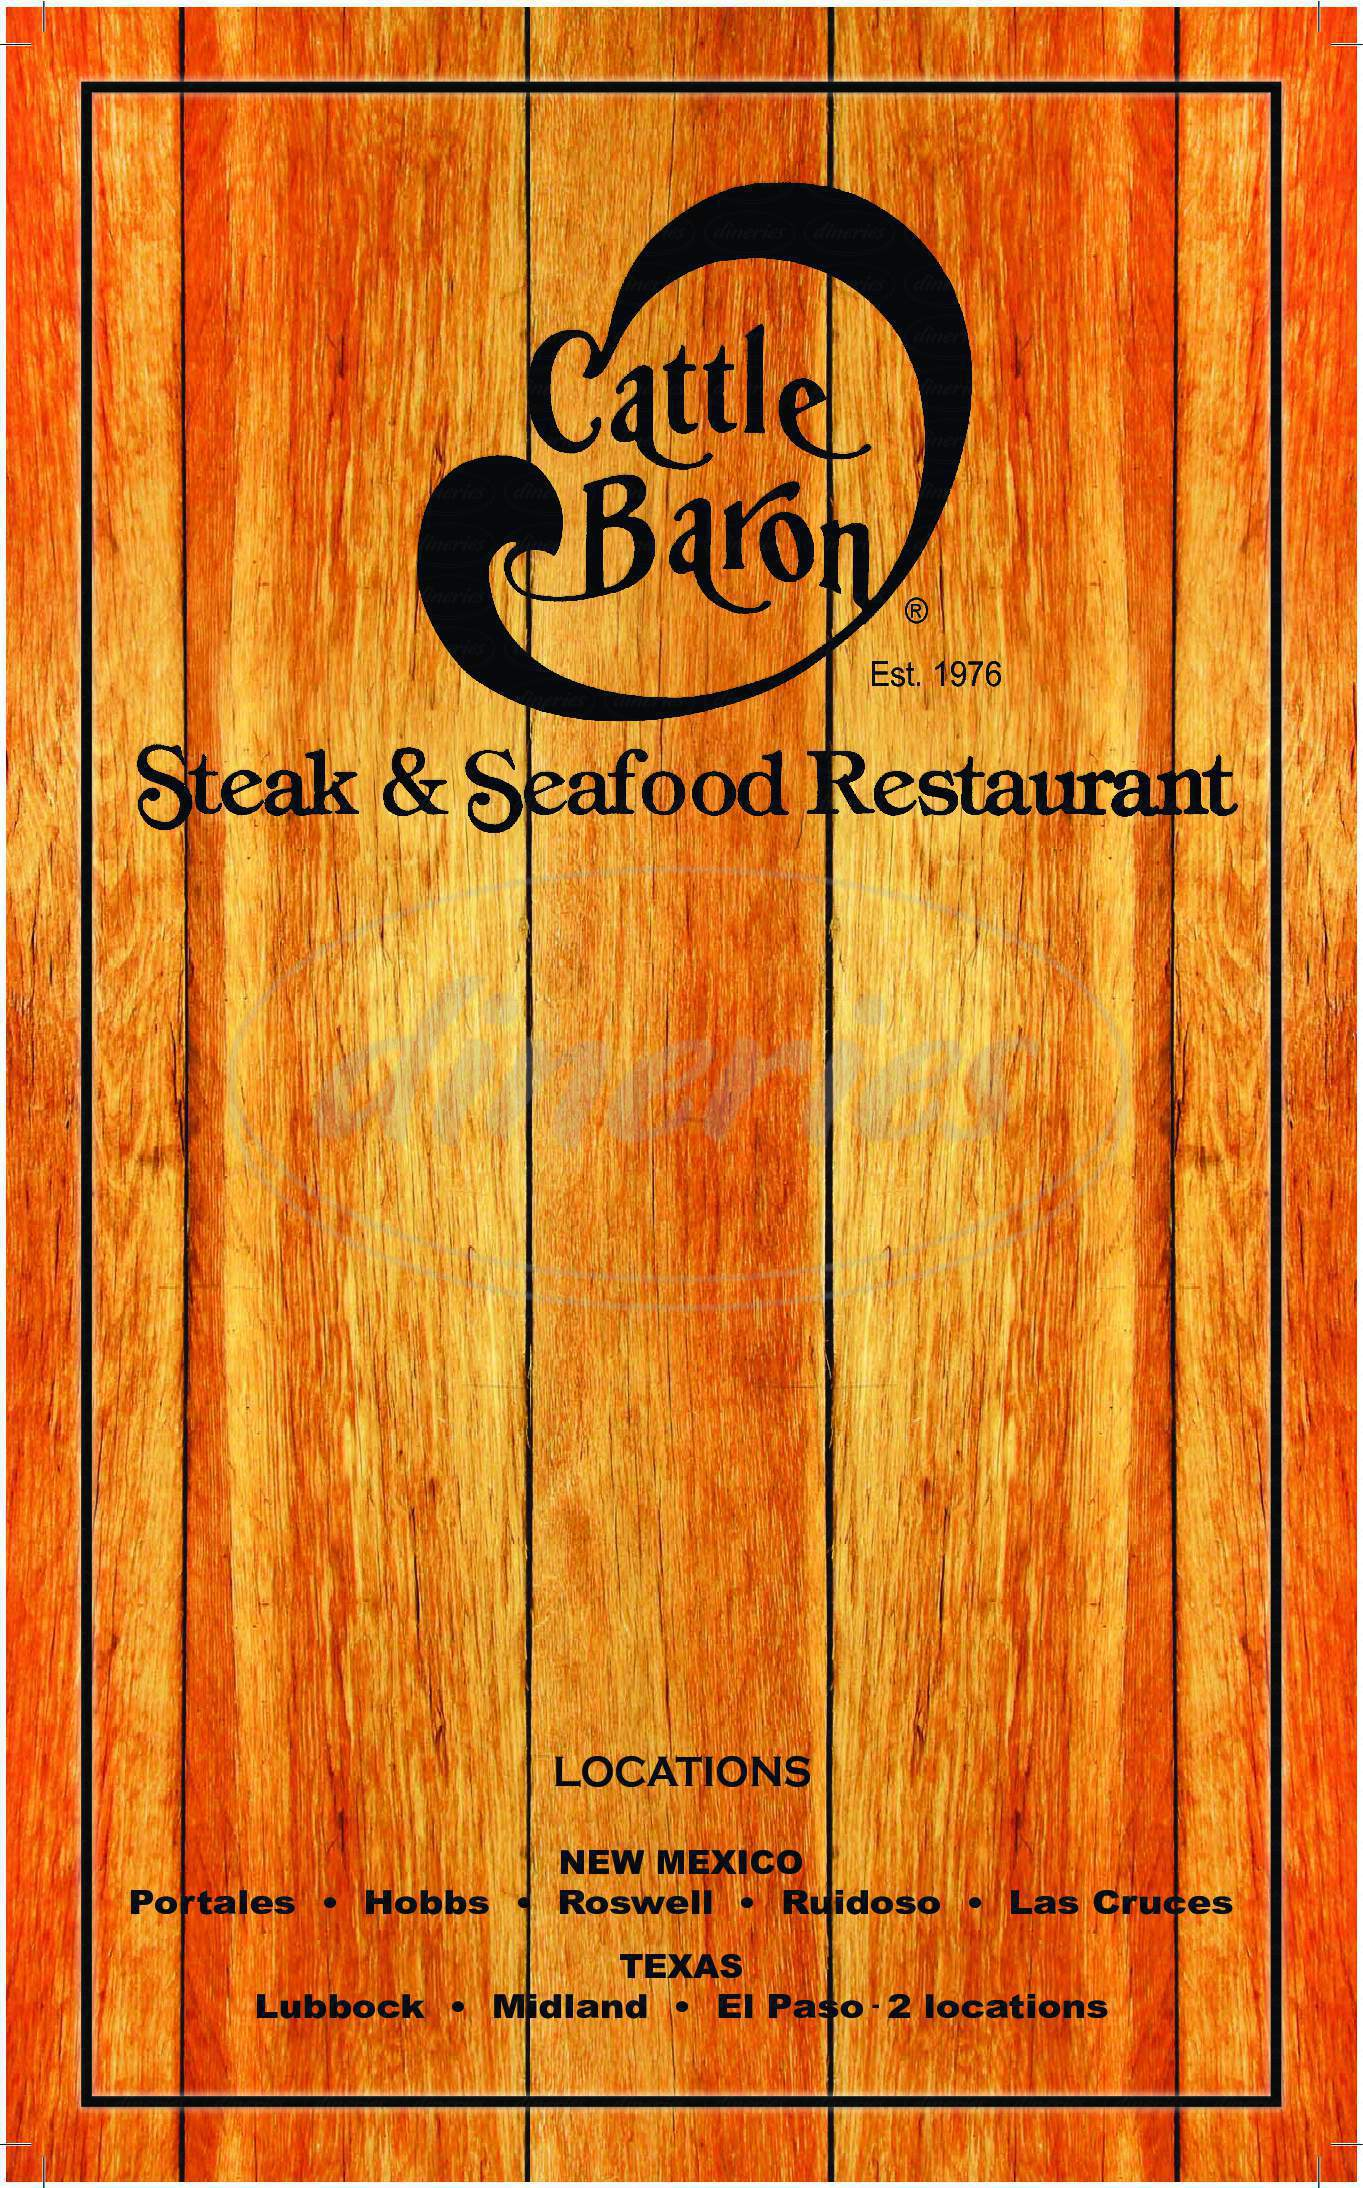 menu for Cattle Baron